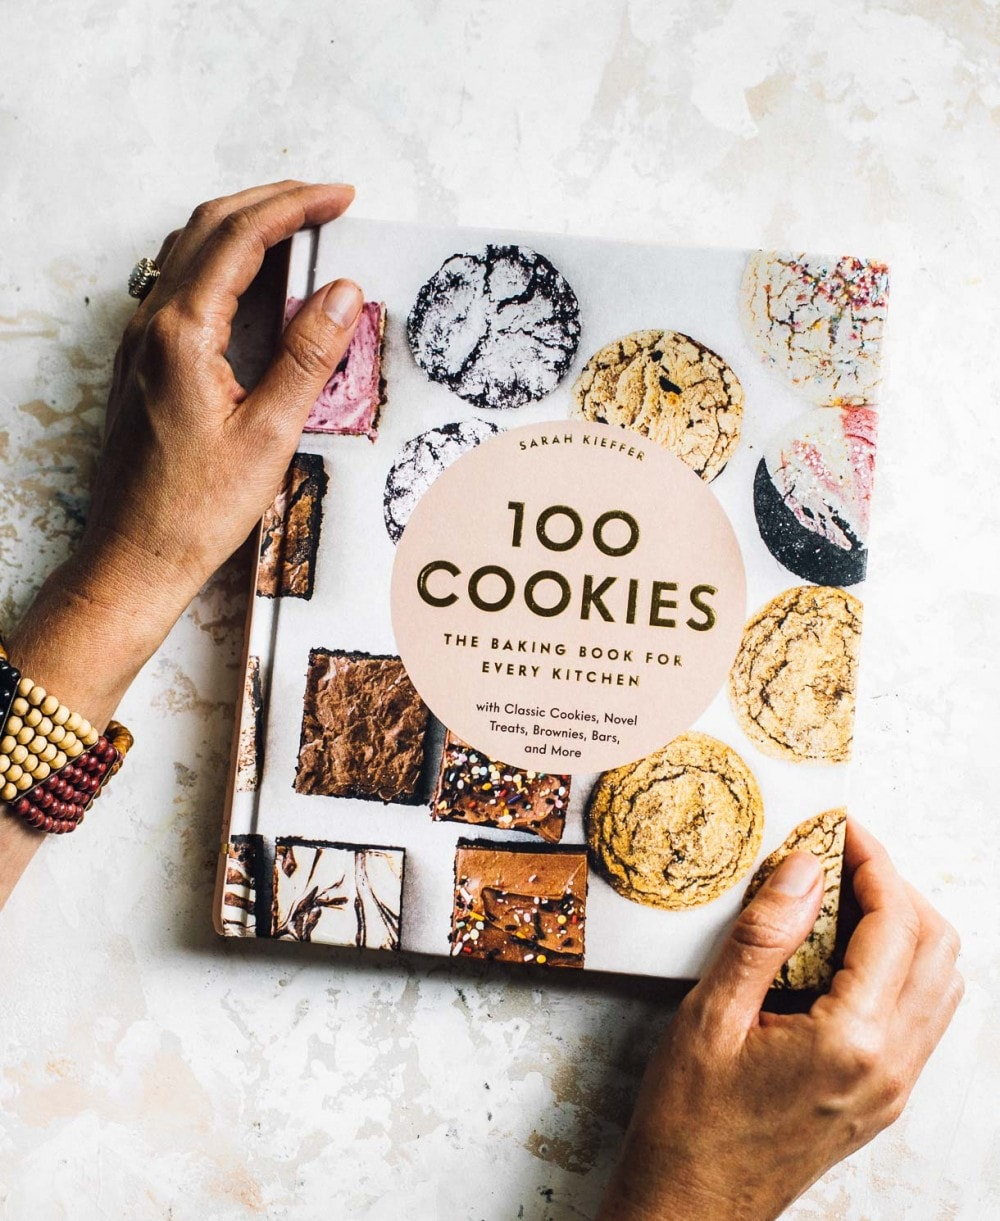 100 cookies cookbook by Sarah Kieffer